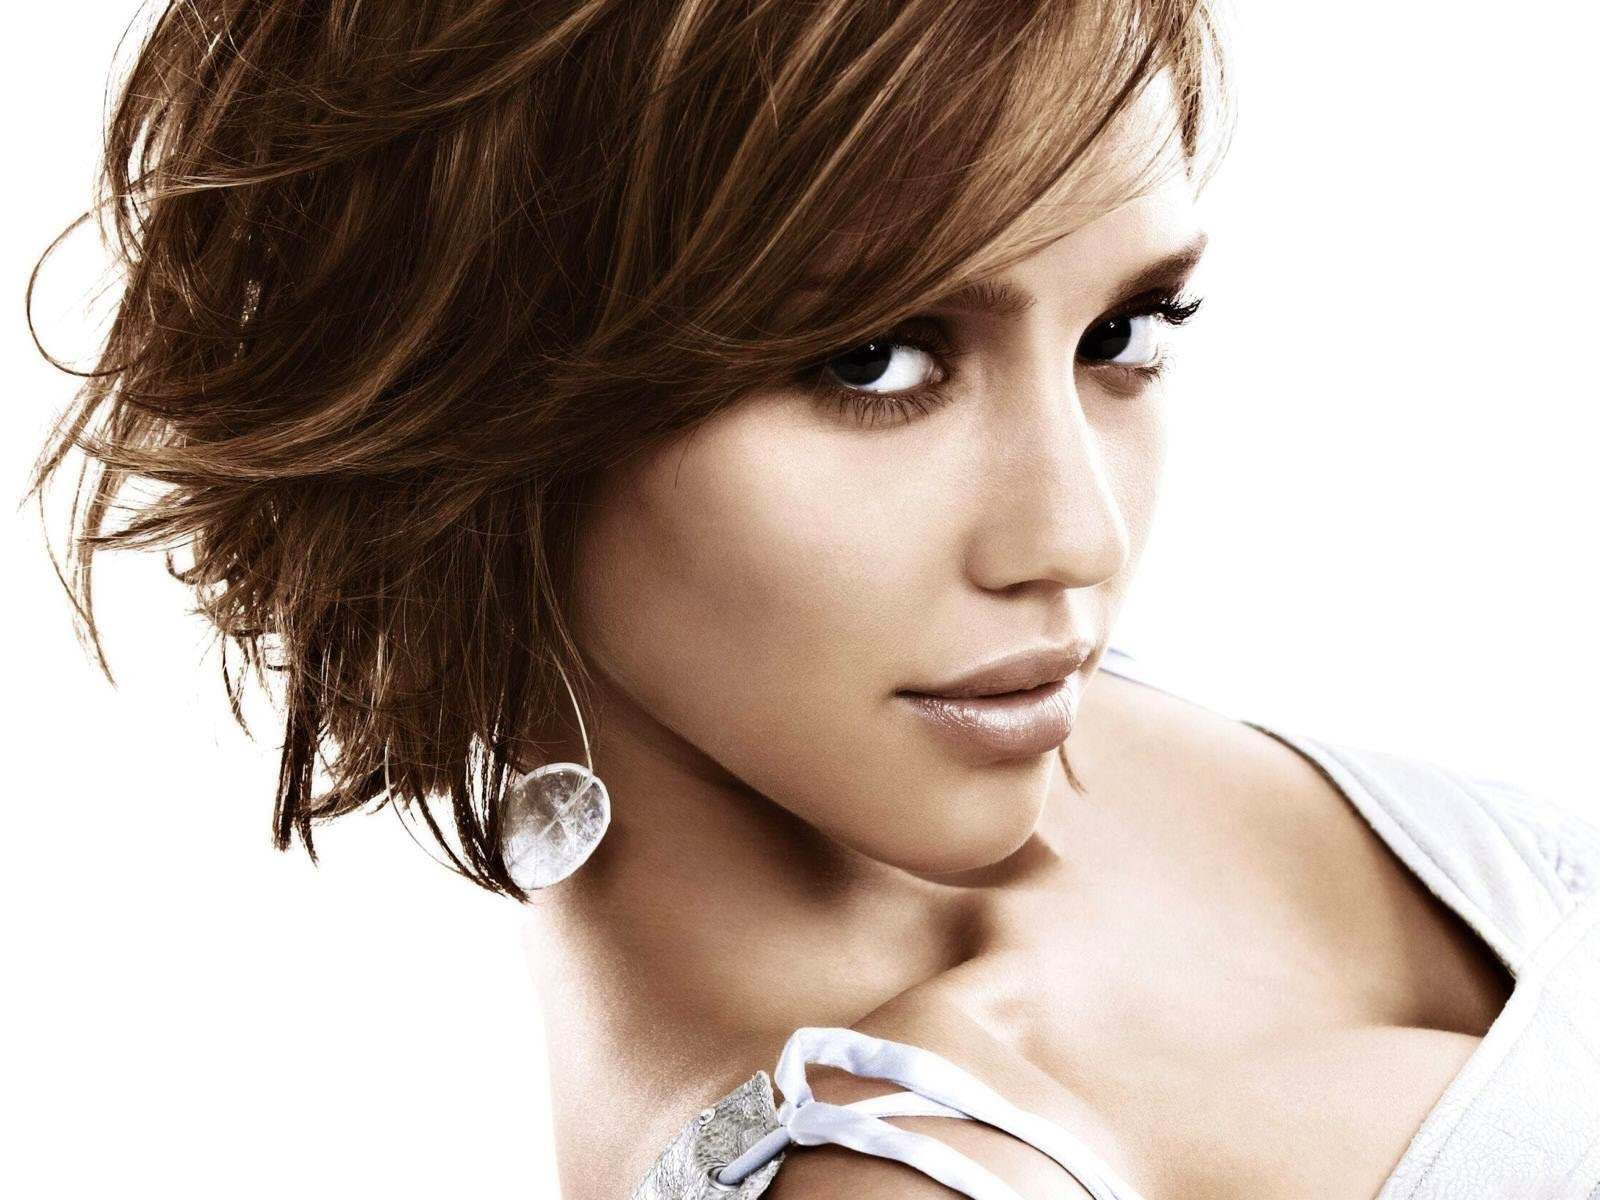 Jjessica alba wallpaper